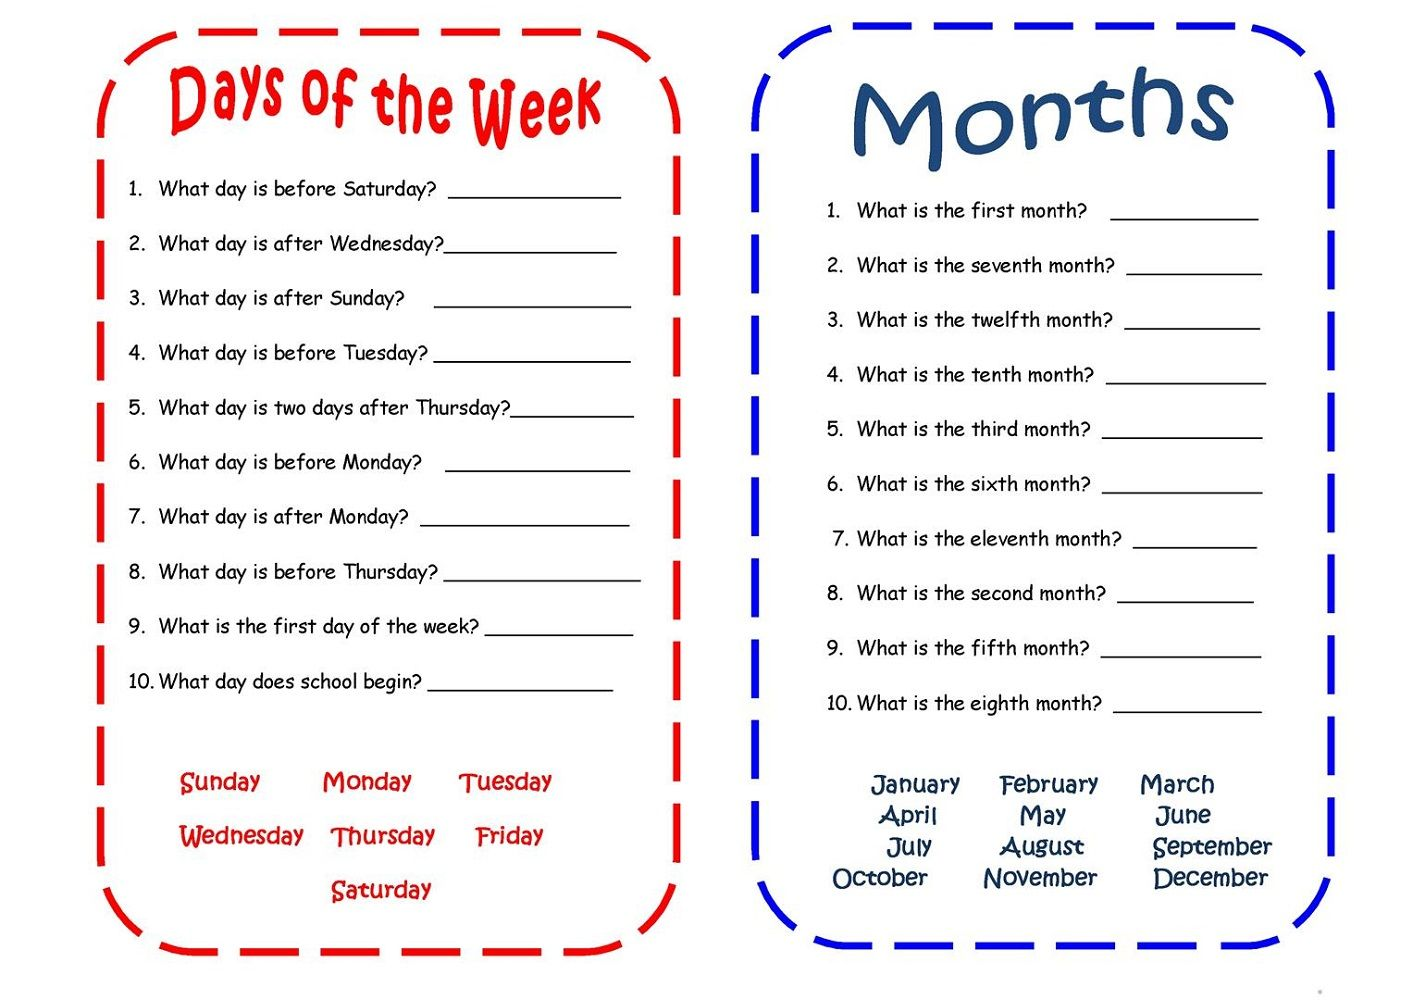 Days Of The Week Worksheets For Kids